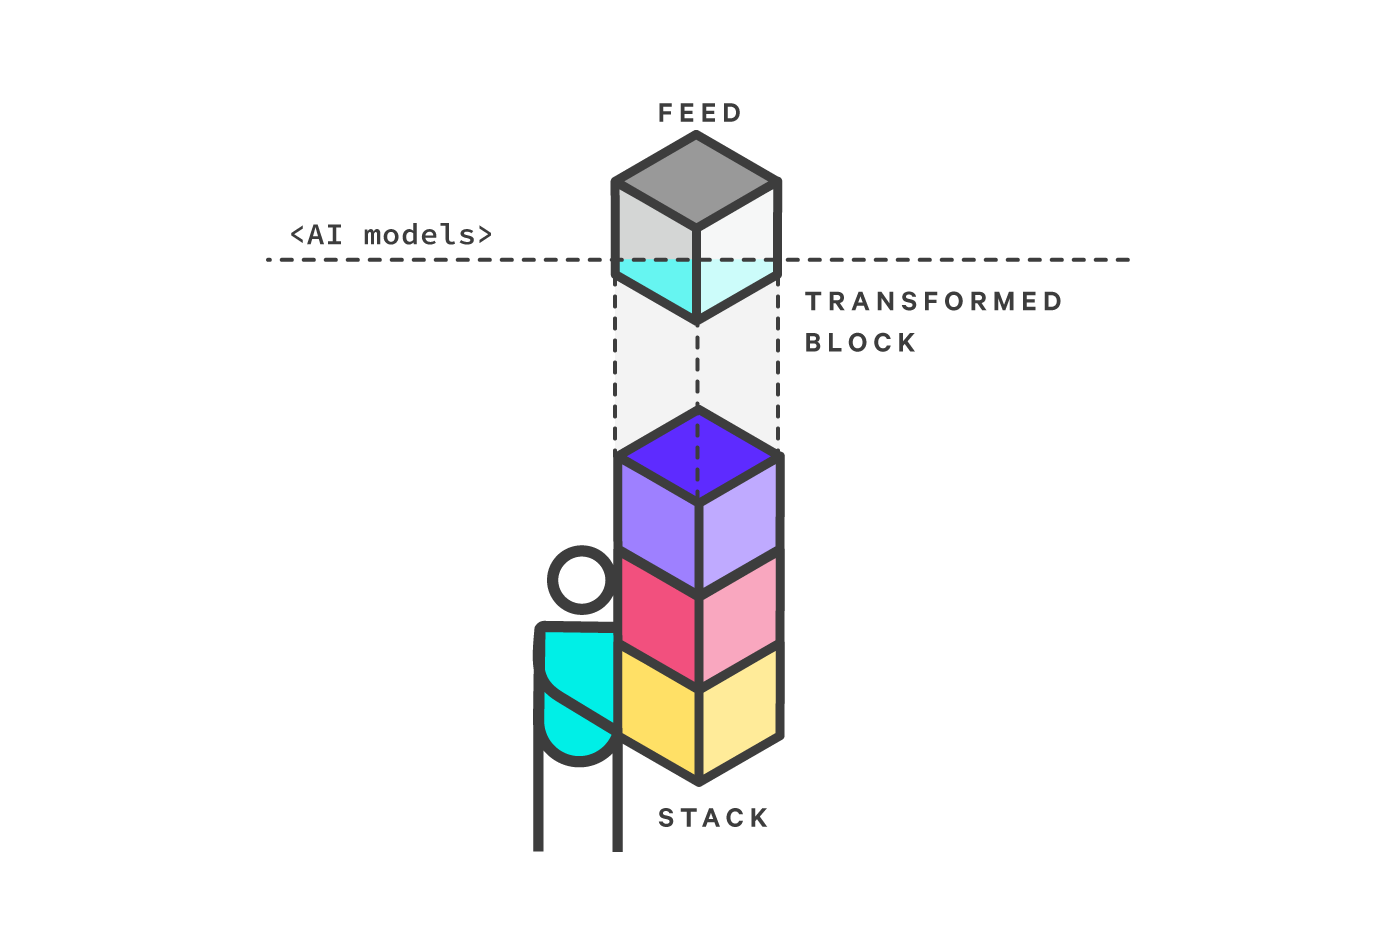 From top to bottom - a memory block traveling through AI models and changing color from grey to Blue that is falling in to a memory stack being held by a person icon.